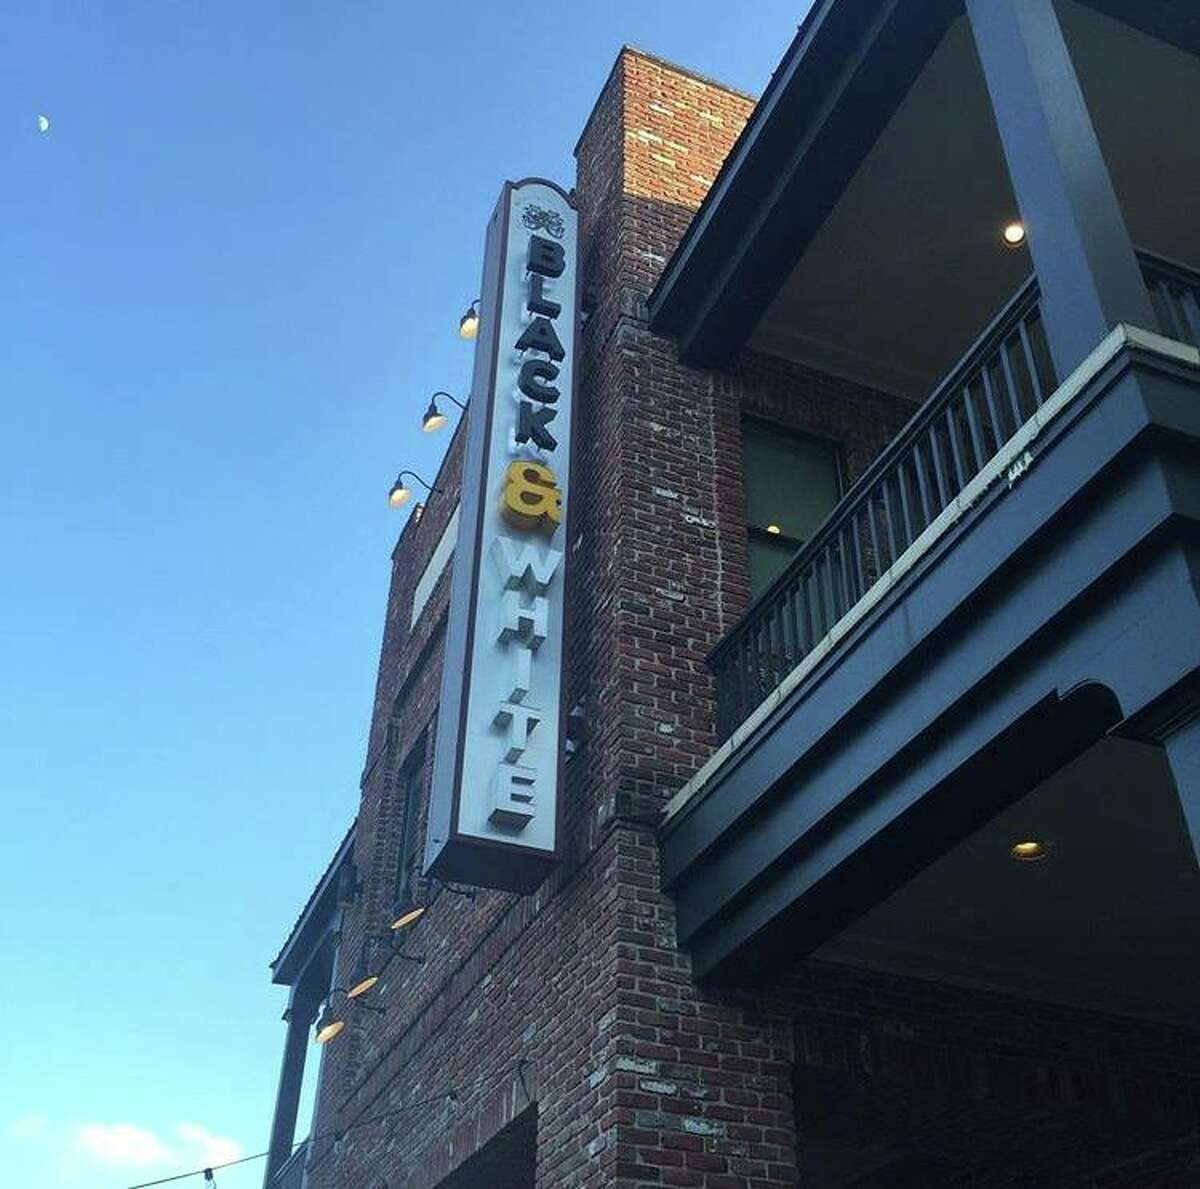 Black & White, 1001 Studewood, is expected to re-open next year. >>Click to see restaurants that closed for good this year.